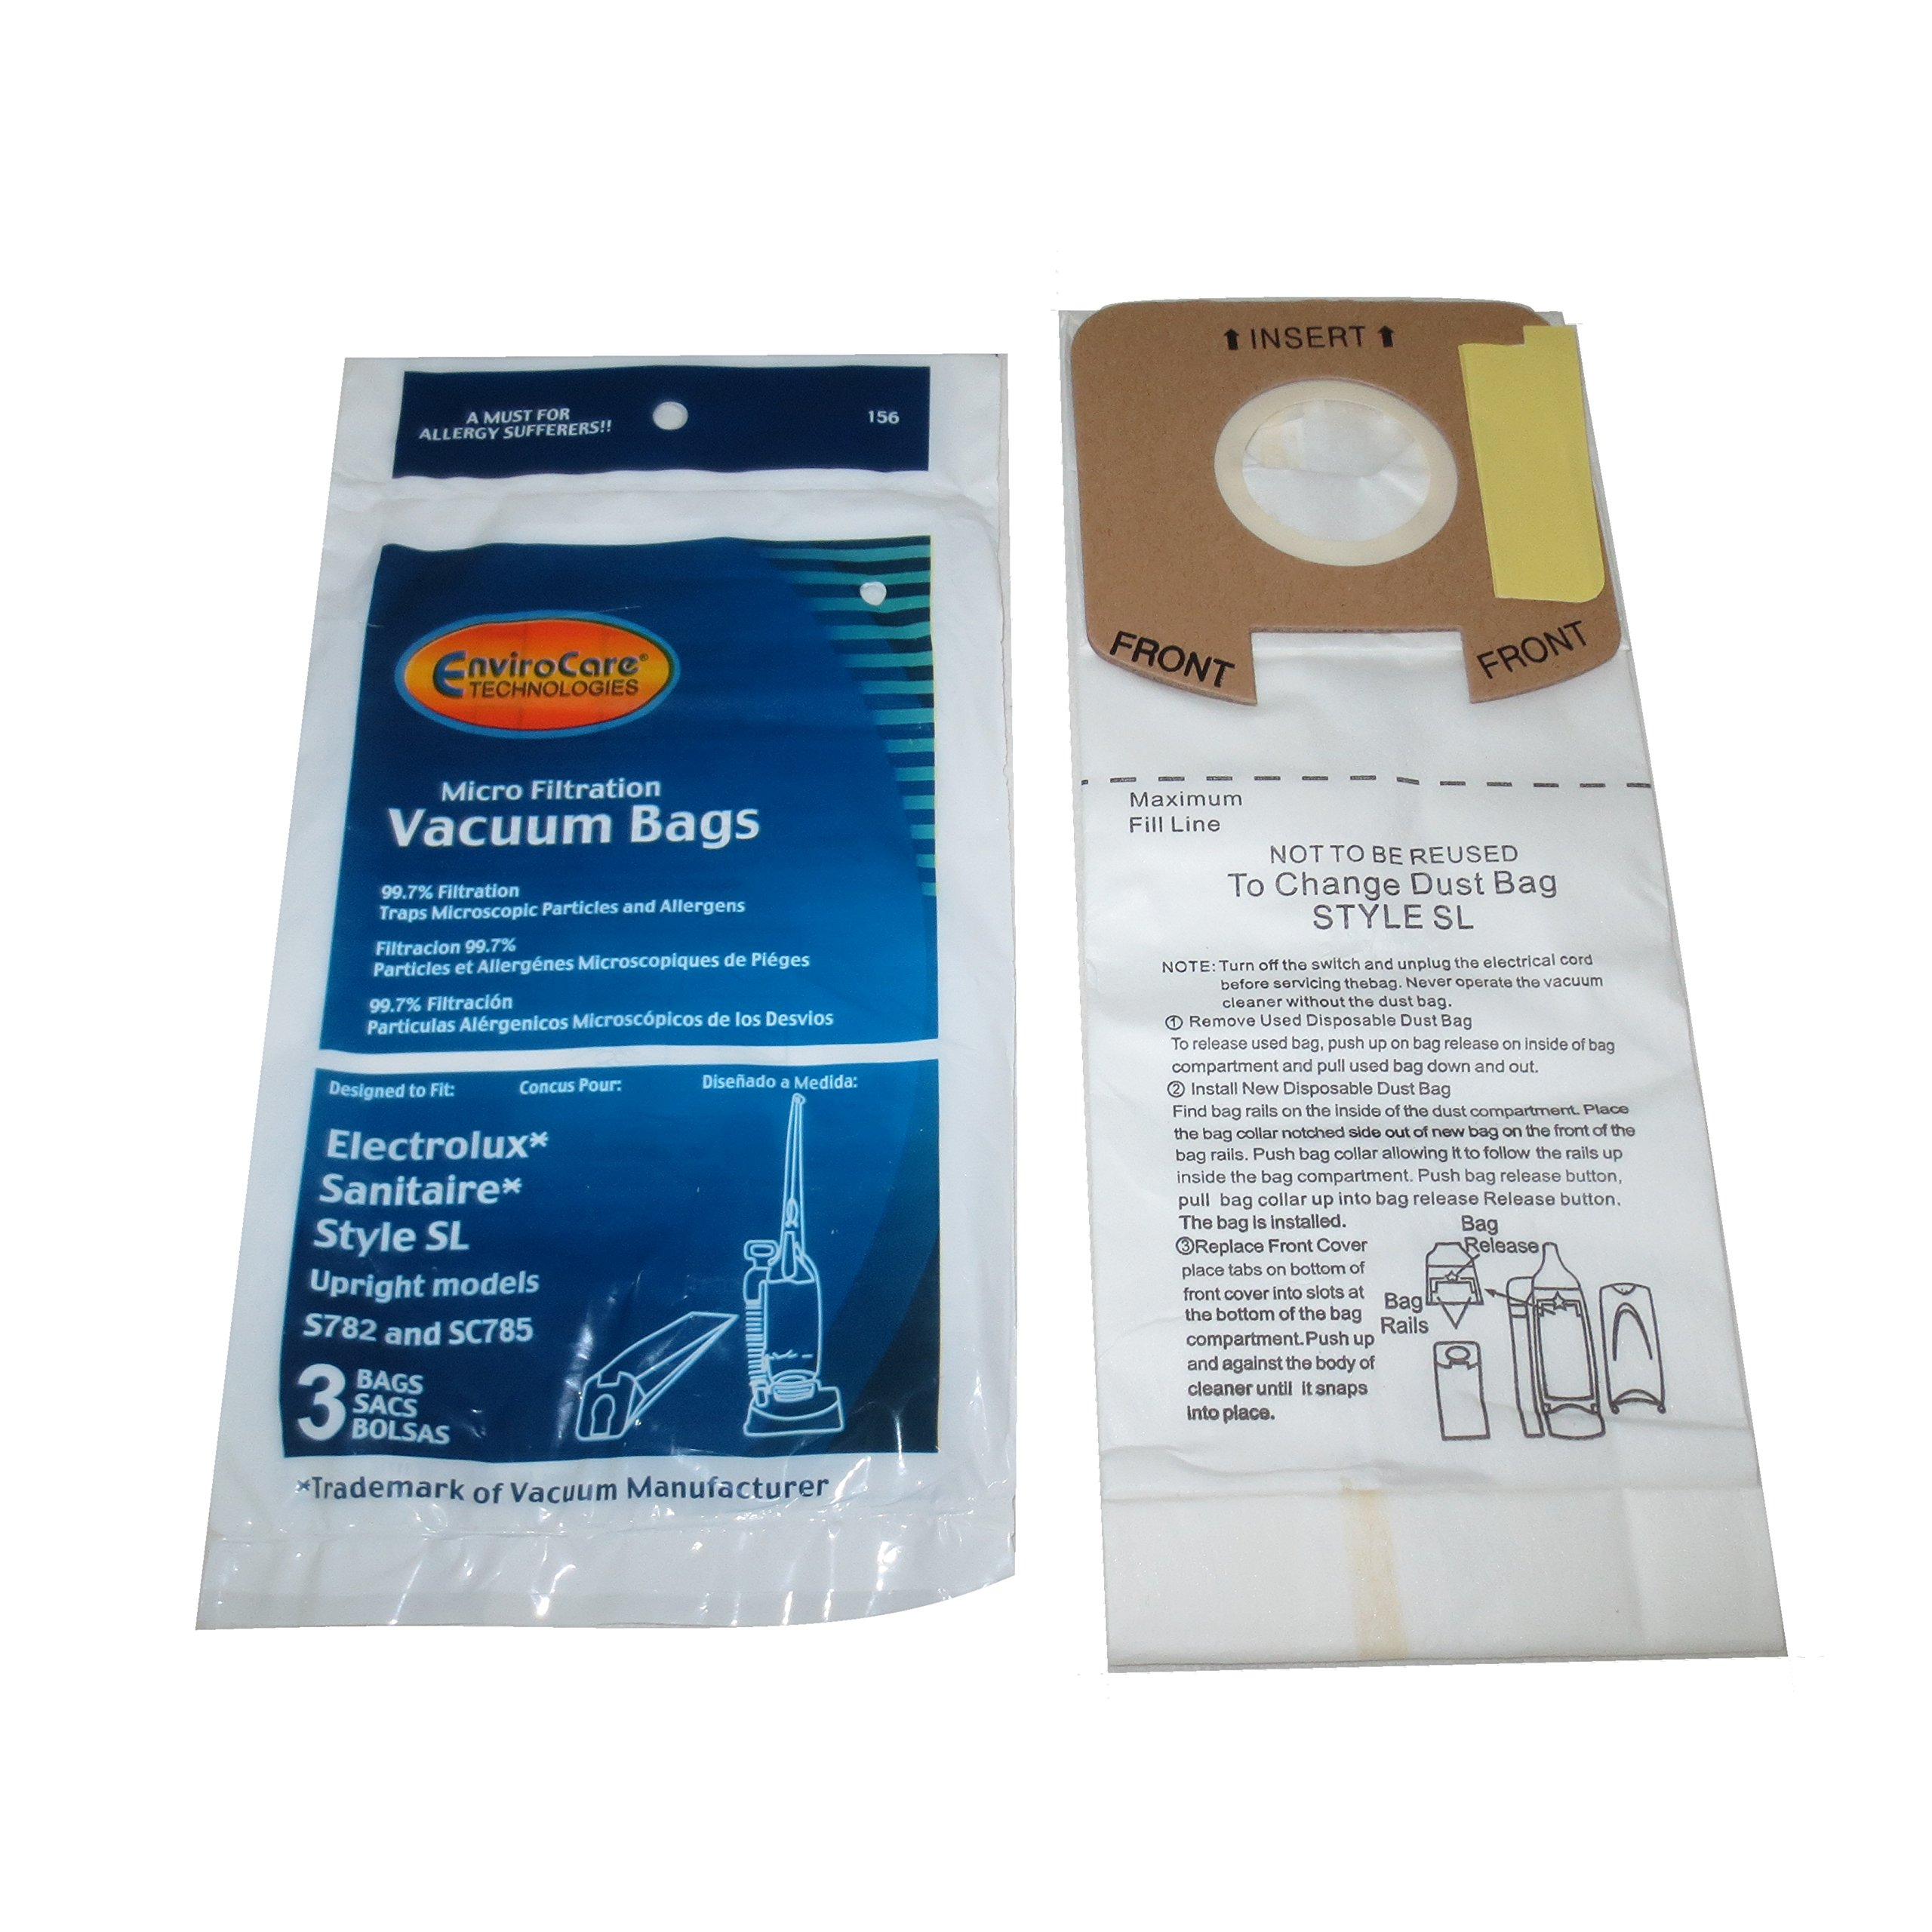 EnviroCare Electrolux Sanitaire Style SL S782 SC785 Model Micro Filtration Vacuum Bags: 27 Bags